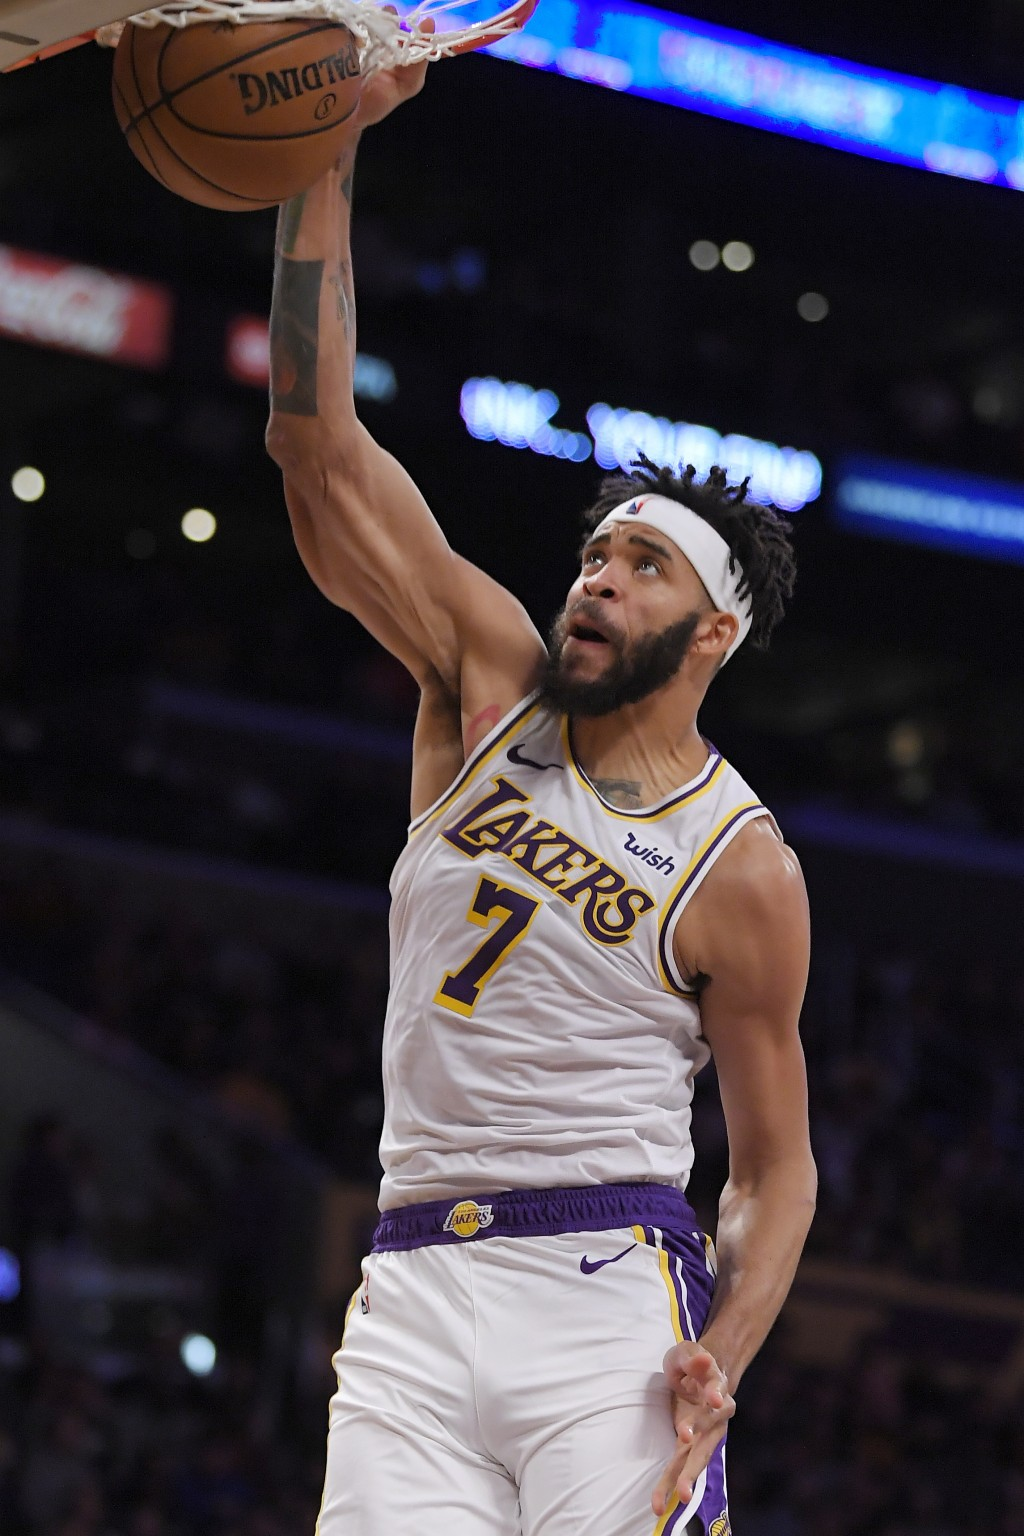 Los Angeles Lakers center JaVale McGee dunks during the first half of a preseason NBA basketball game against the Golden State Warriors, Monday, Oct. ...